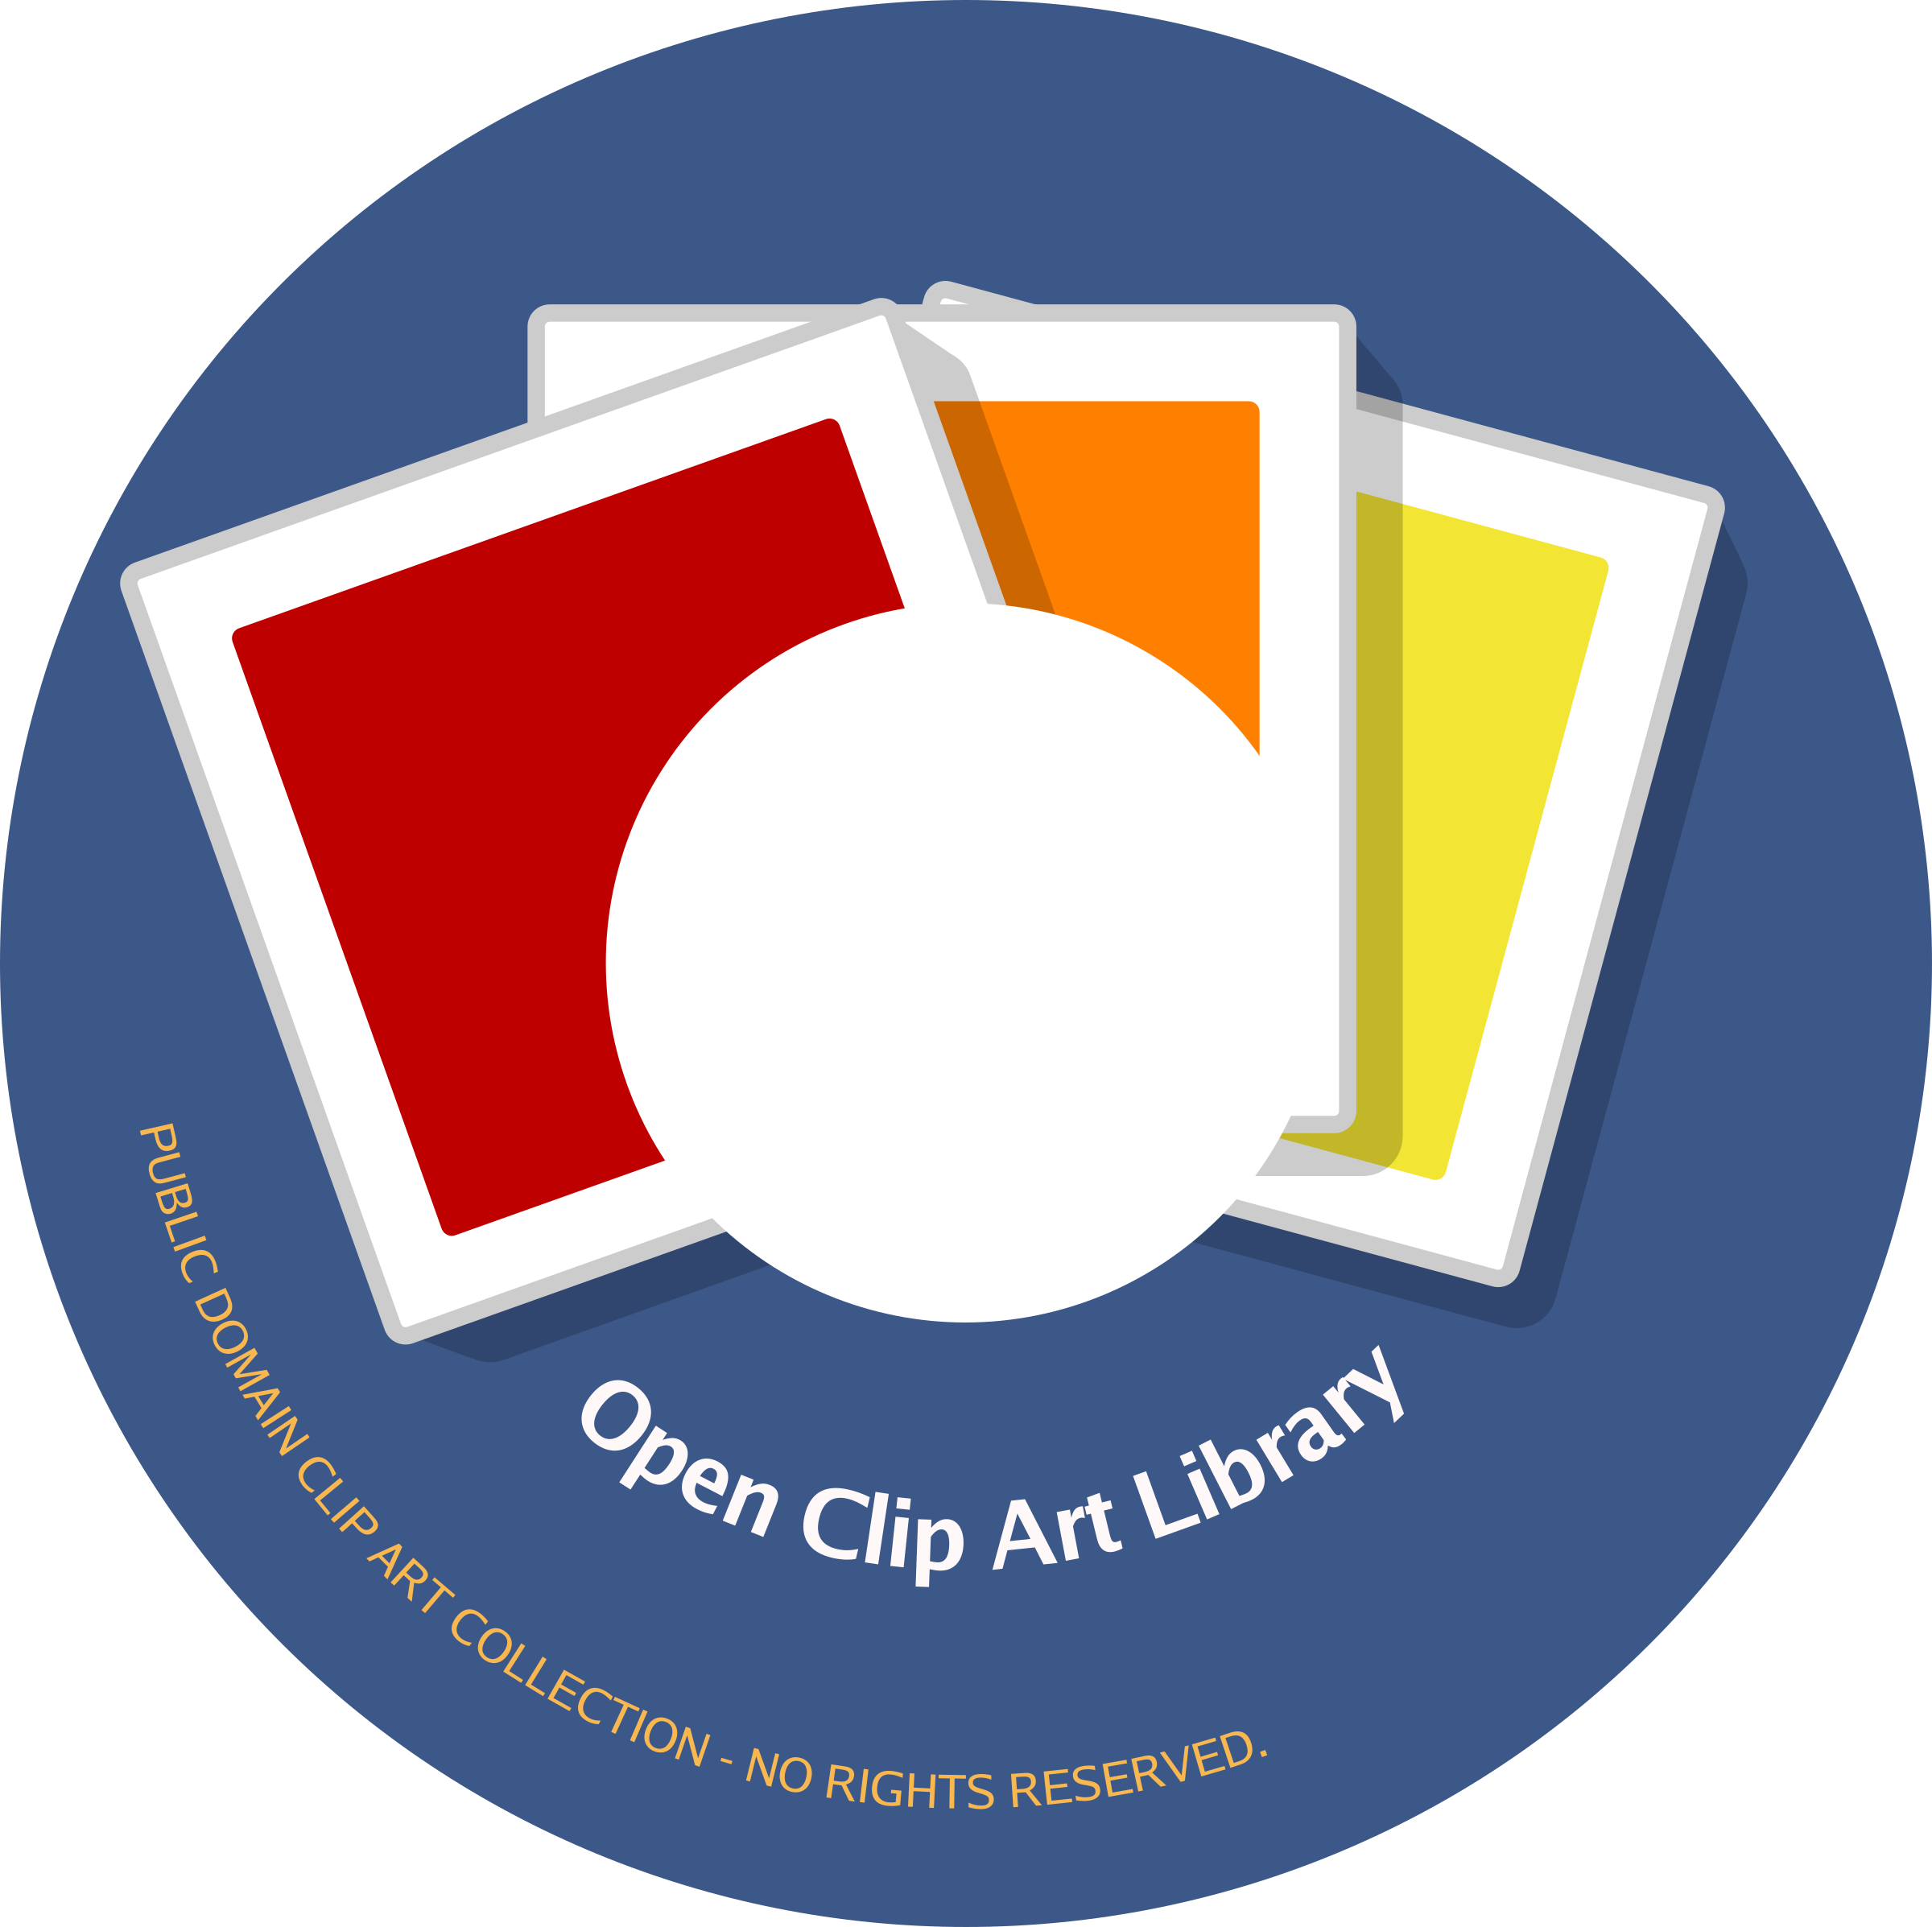 cdlabel openclipart c 01 by Anonymous